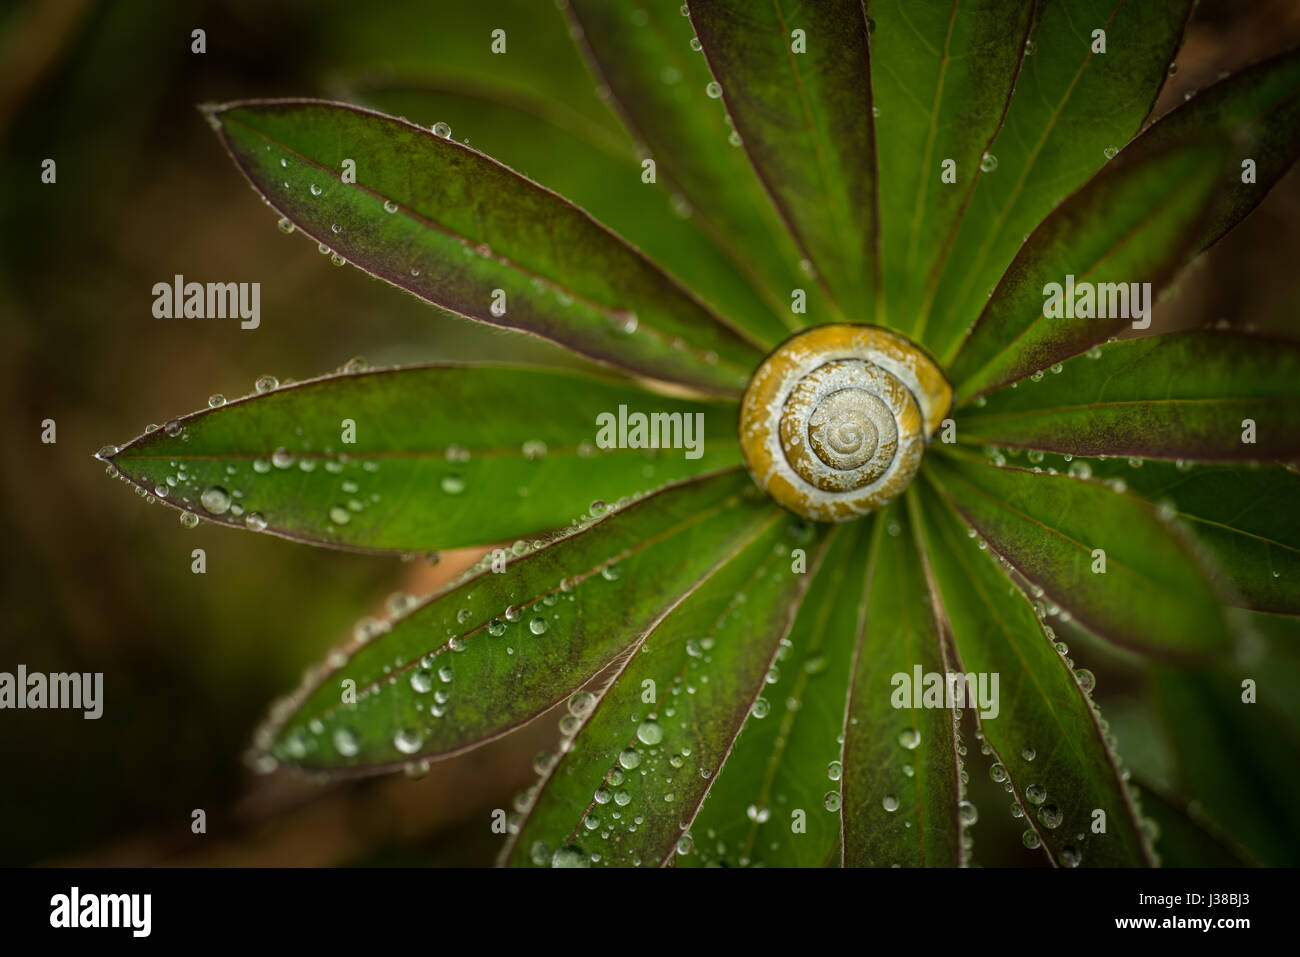 Snail shell in the center of a leaf plant with water droplets. - Stock Image